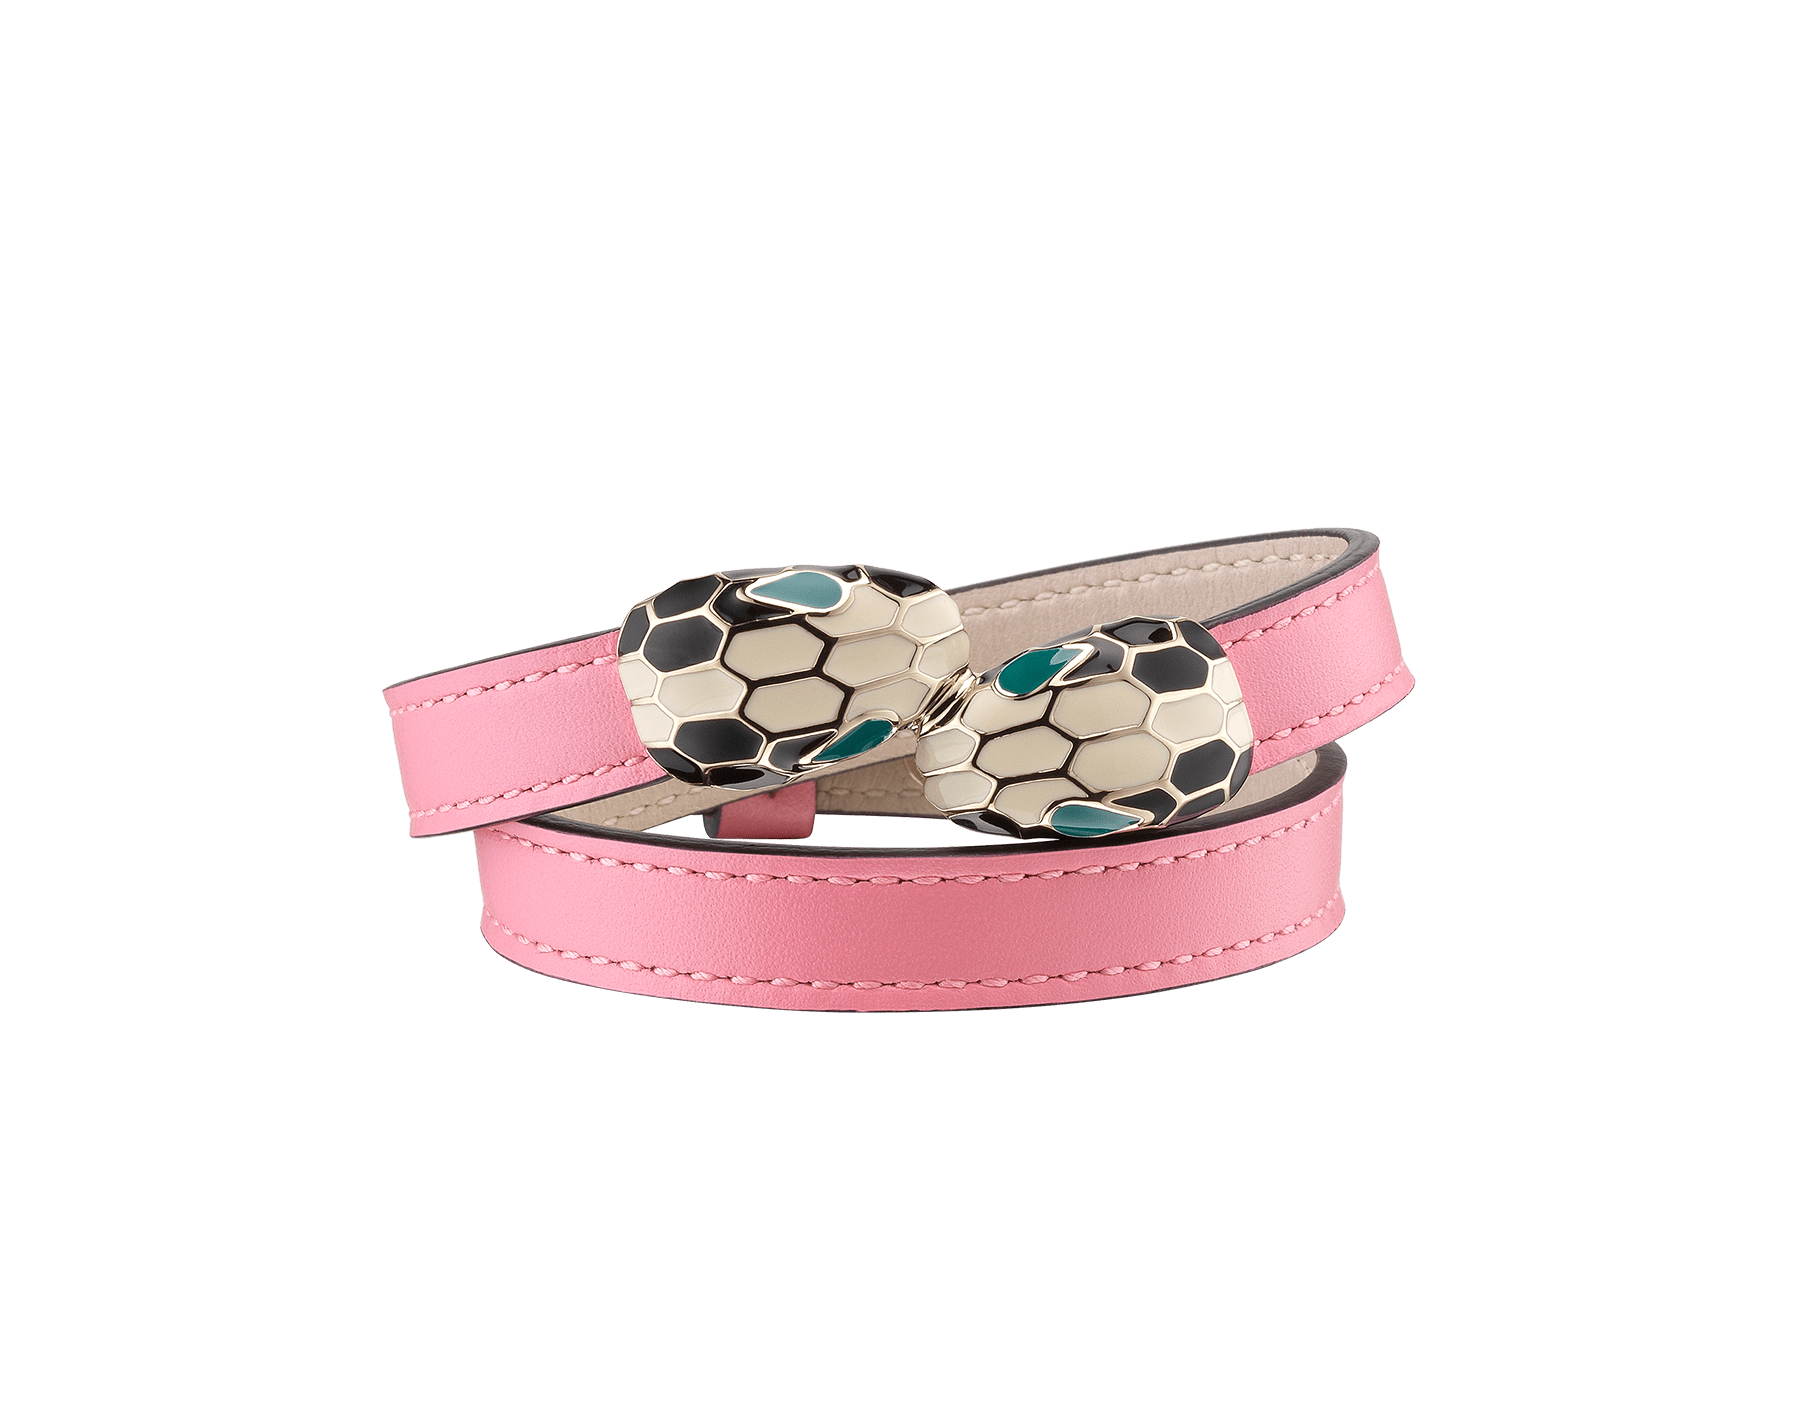 Serpenti Forever multi-coiled bracelet in candy quartz calf leather, with brass light gold plated hardware. Iconic contraire snakehead décor in black and white enamel, with green enamel eyes MCSerp-CL-CQ image 1